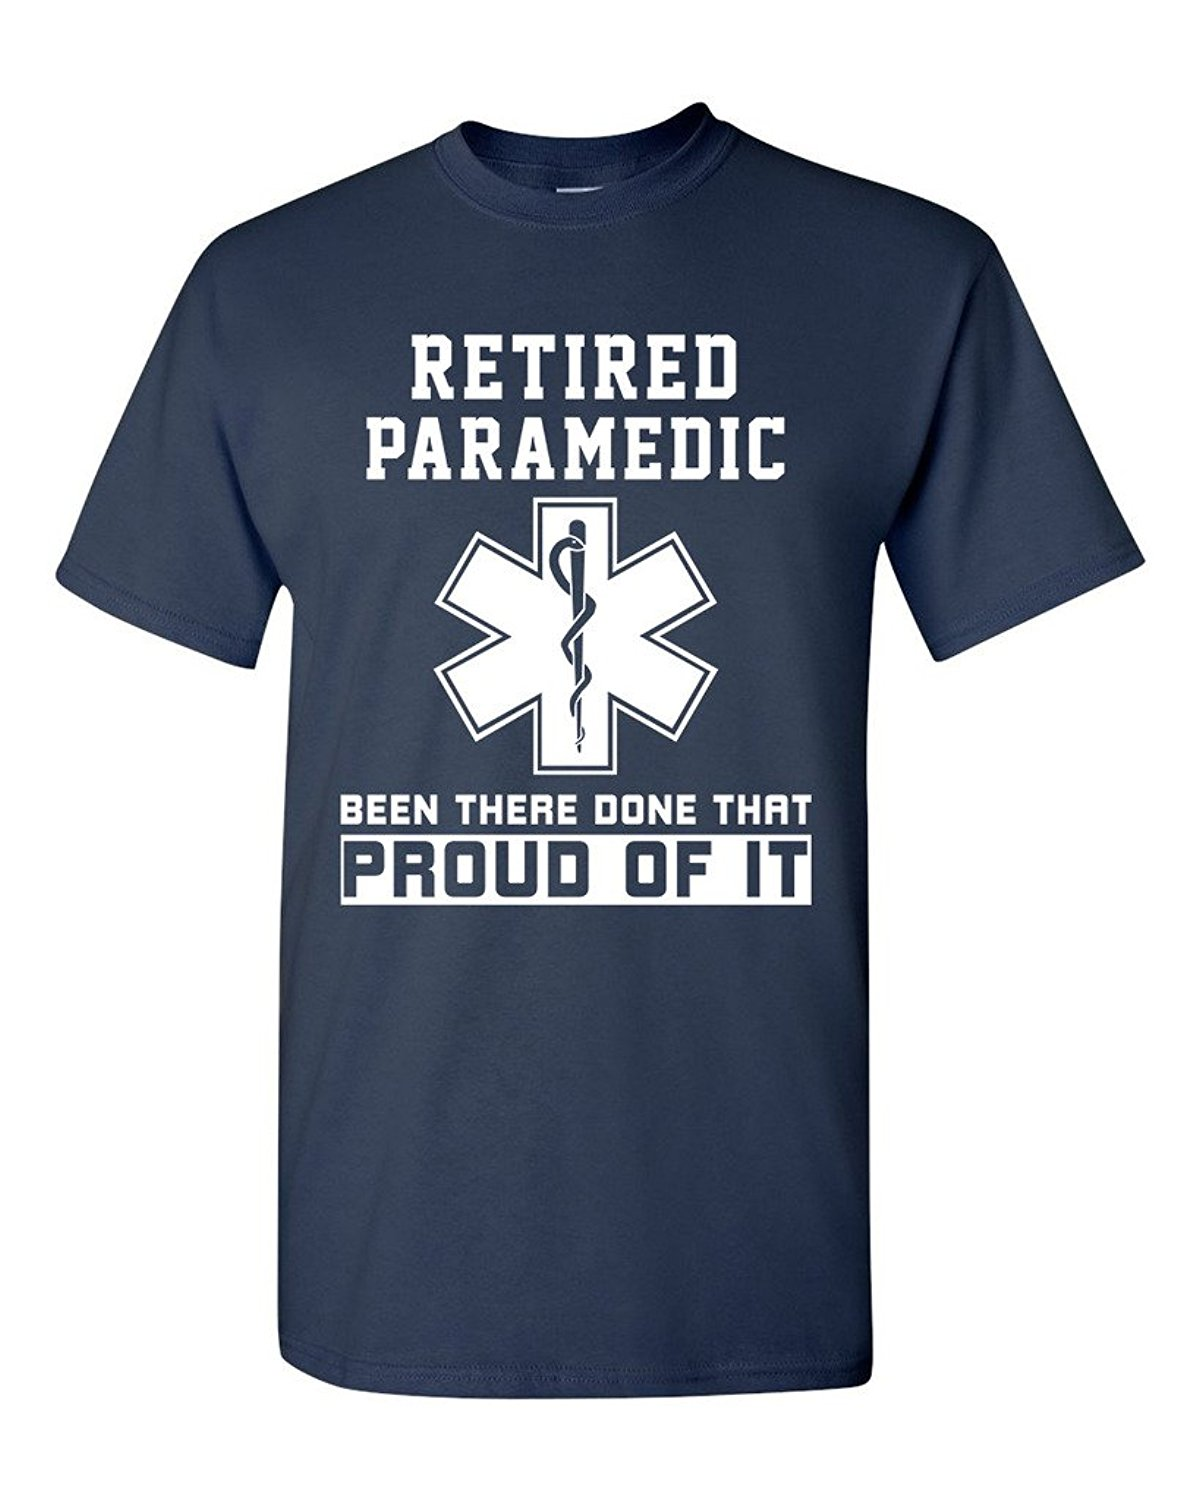 Quality T Shirts Printing T Shirt Short O Neck Christmas Retired Paramedic Been There Done That Proud Of It Shirt For Men in T Shirts from Men 39 s Clothing